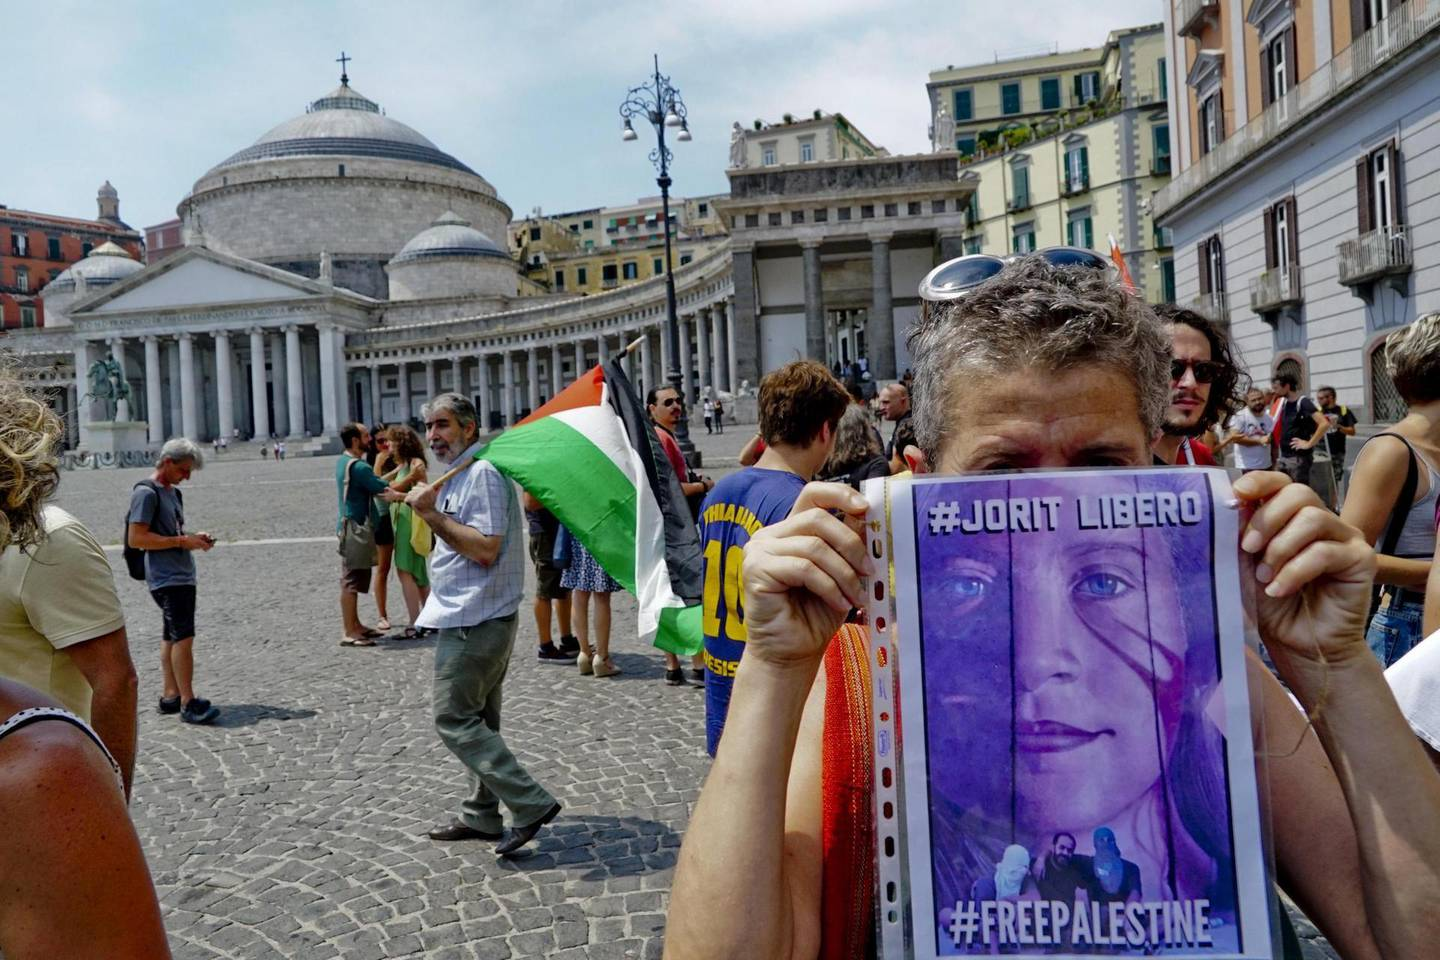 epa06917322 People take part in a solidarity demonstration with Italian street artist Jorit Agoch, who was arrested by the Israeli police on charges of having damaged and defaced a defense barrier in Bethlehem, in Naples, southern Italy, 29 July 2018. About 250 people participated in the protest holding flags of Palestine and shouting the slogan 'Free Jorit'. Jorit Agoch was arrested on 28 July after he painted a mural of 17-year-old Palestinian activist Ahed Tamimi on the separation wall between the West Bank and Israel. Ahed Tamimi, who was arrested last December after she was filmed slapping an Israeli soldier near Ramallah, in the occupied West Bank, was released from prison on 29 July 2018 after serving nearly eight-month in detention.  EPA/ANSA